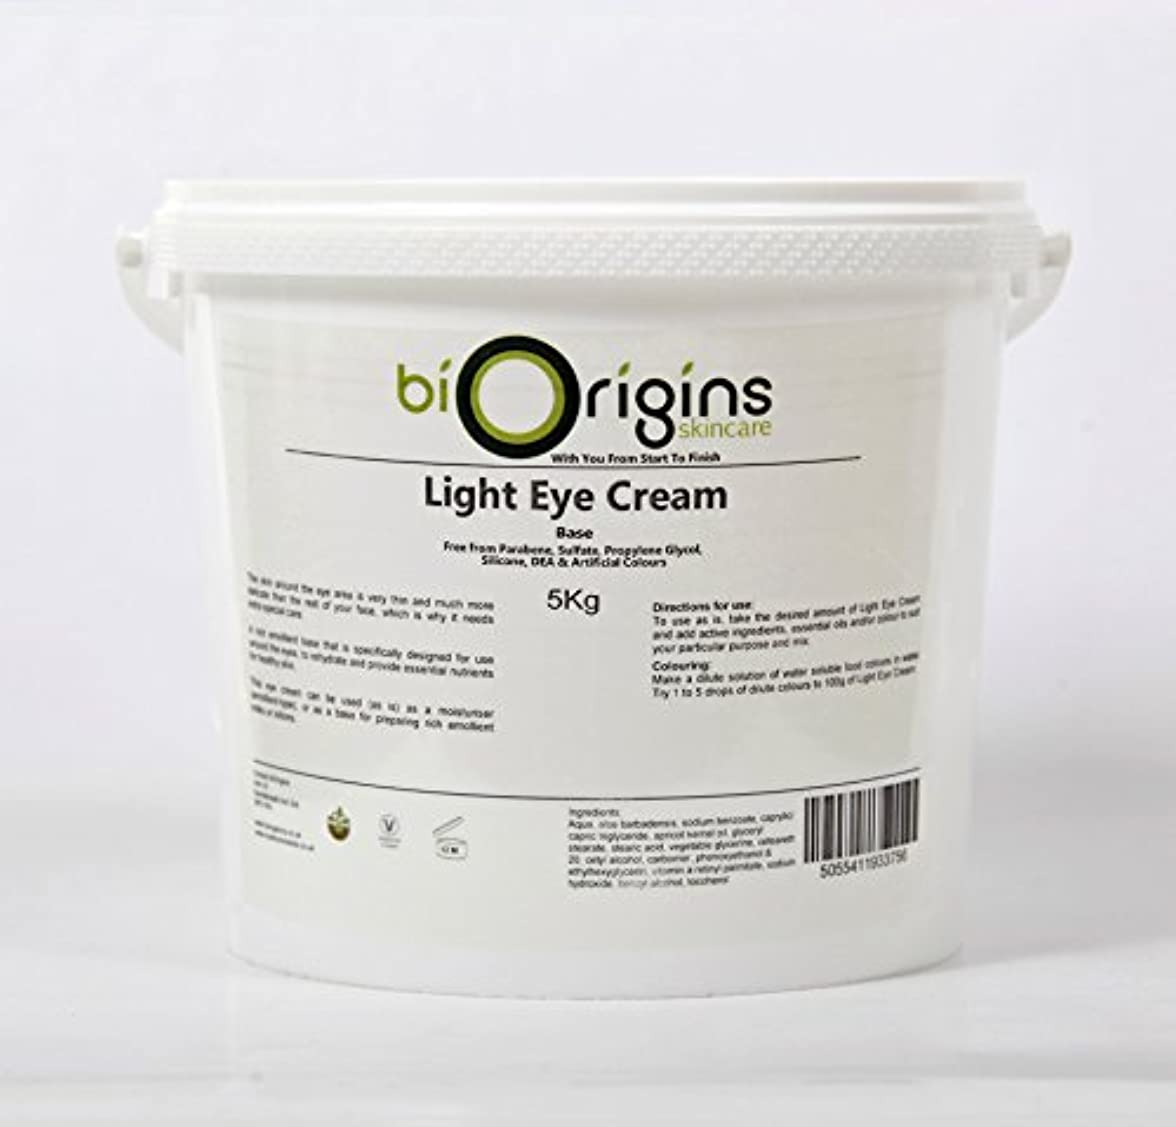 疲れた砂利慣らすLight Eye Cream - Botanical Skincare Base - 5Kg